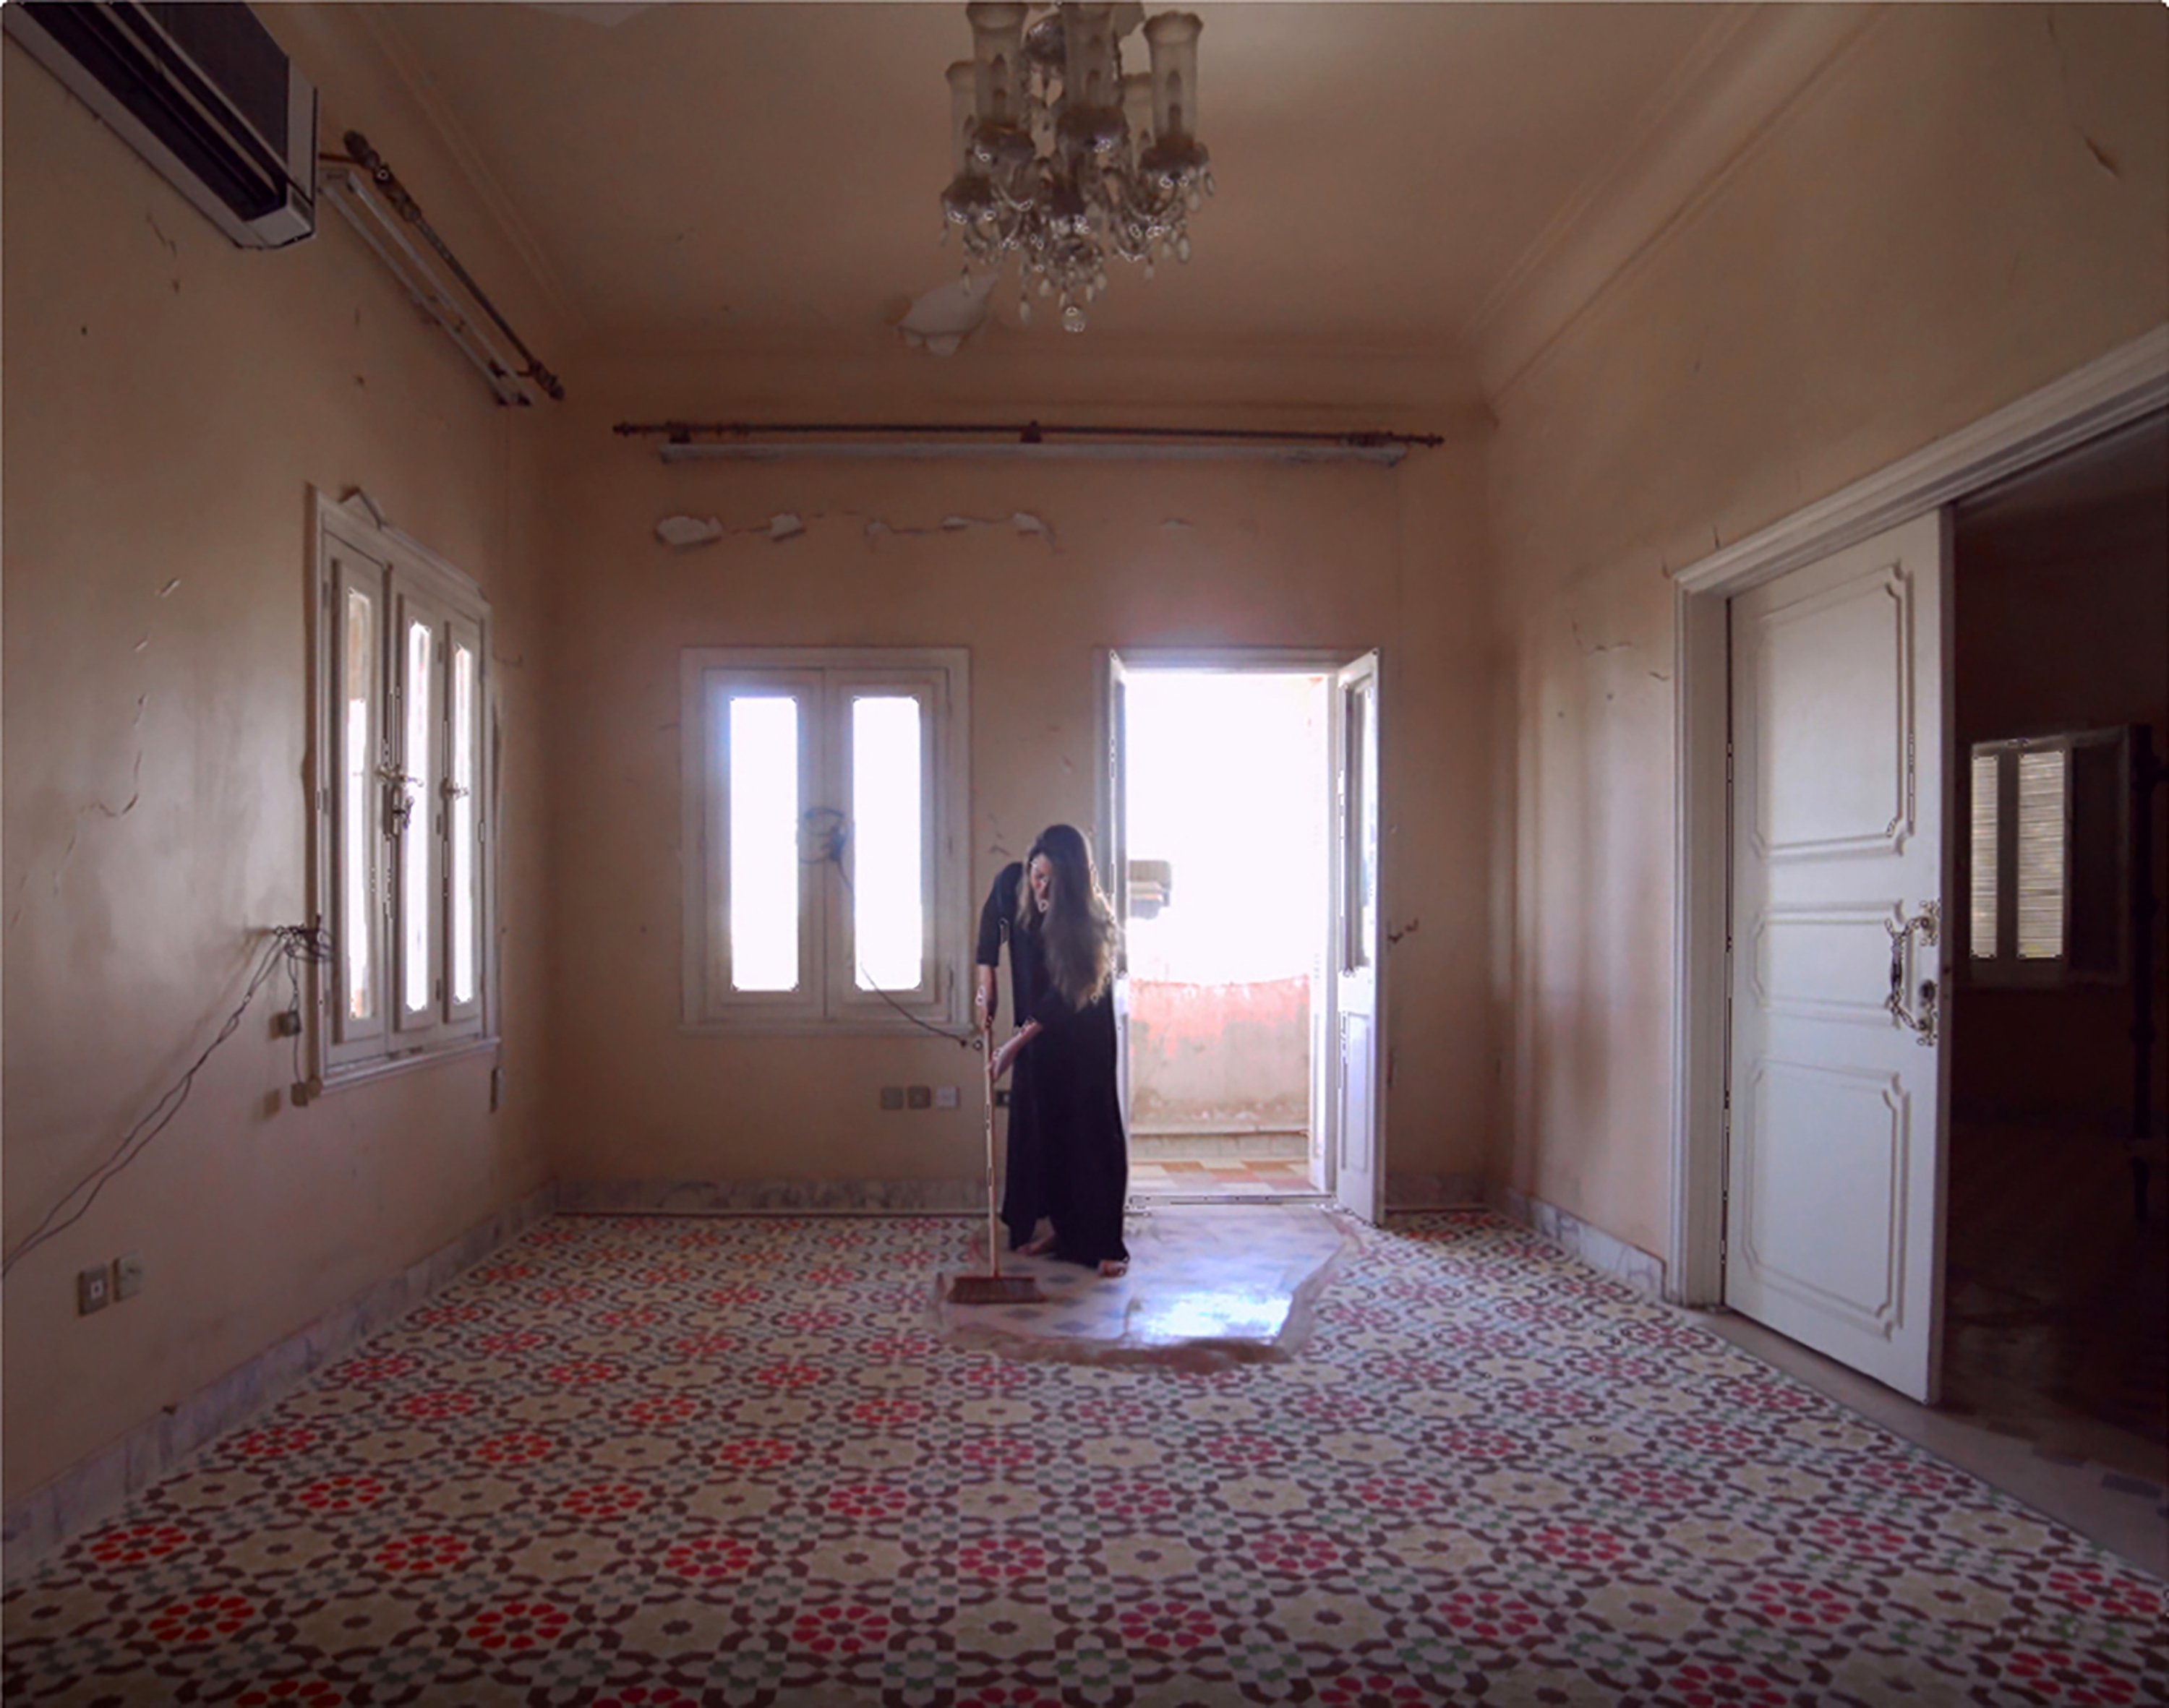 Dana Awartani, 'I Went Away and Forgot You. A While Ago I Remembered. I Remembered I'd Forgotten You. I Was Dreaming,' mixed media installation with sand and natural pigment, single-channel video, 22'11''. (PHOTO COURTESY OF PERA MUSEUM)